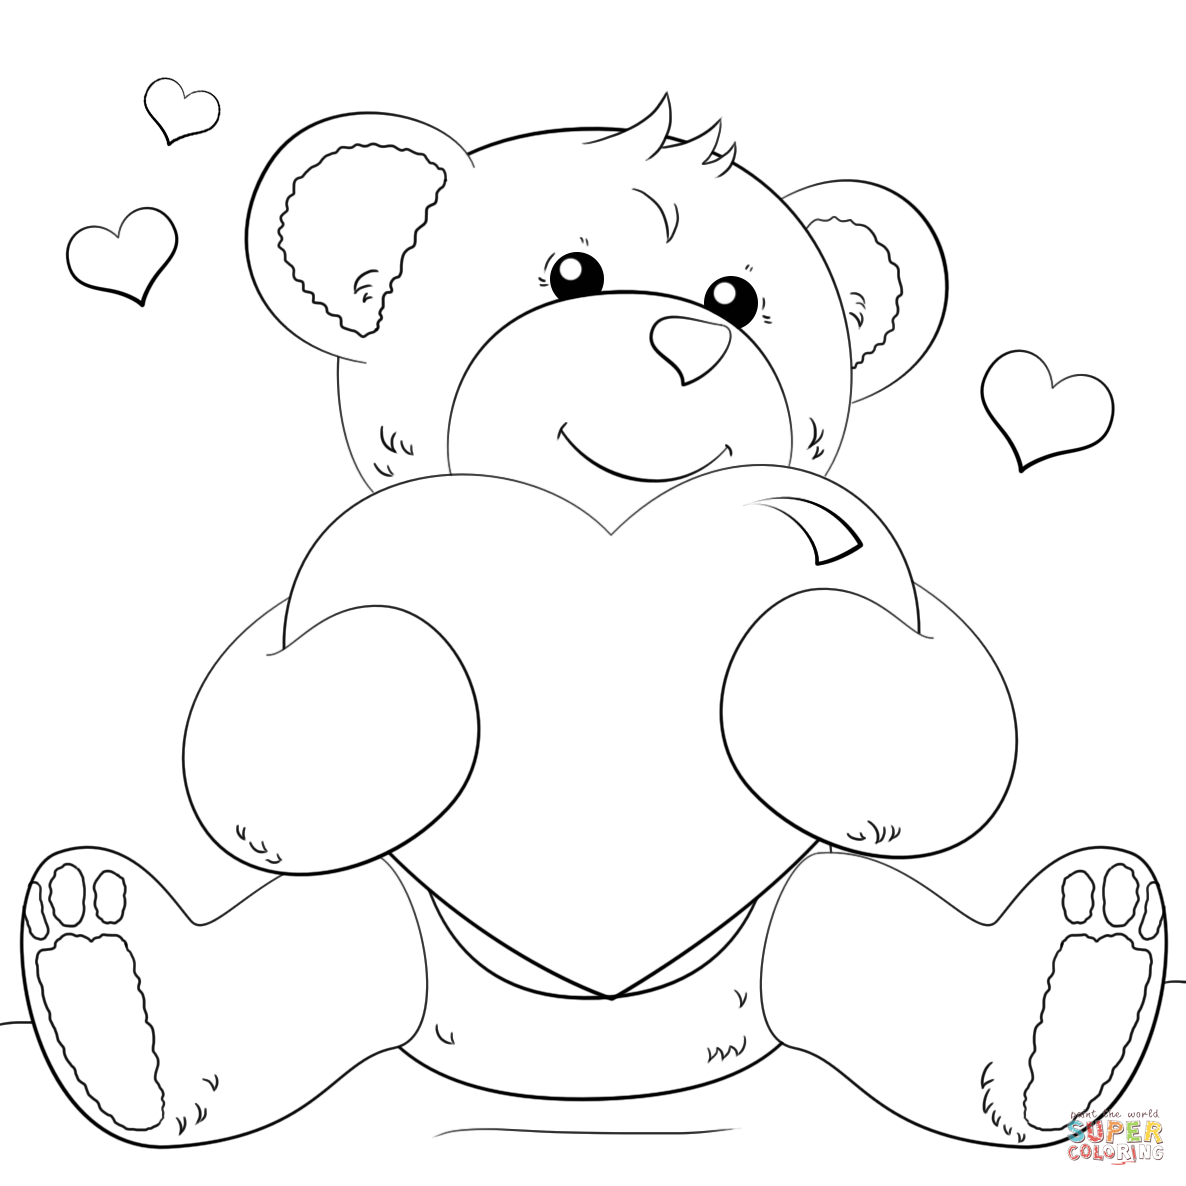 Teddy Bear Holding A Heart Drawing At Getdrawings